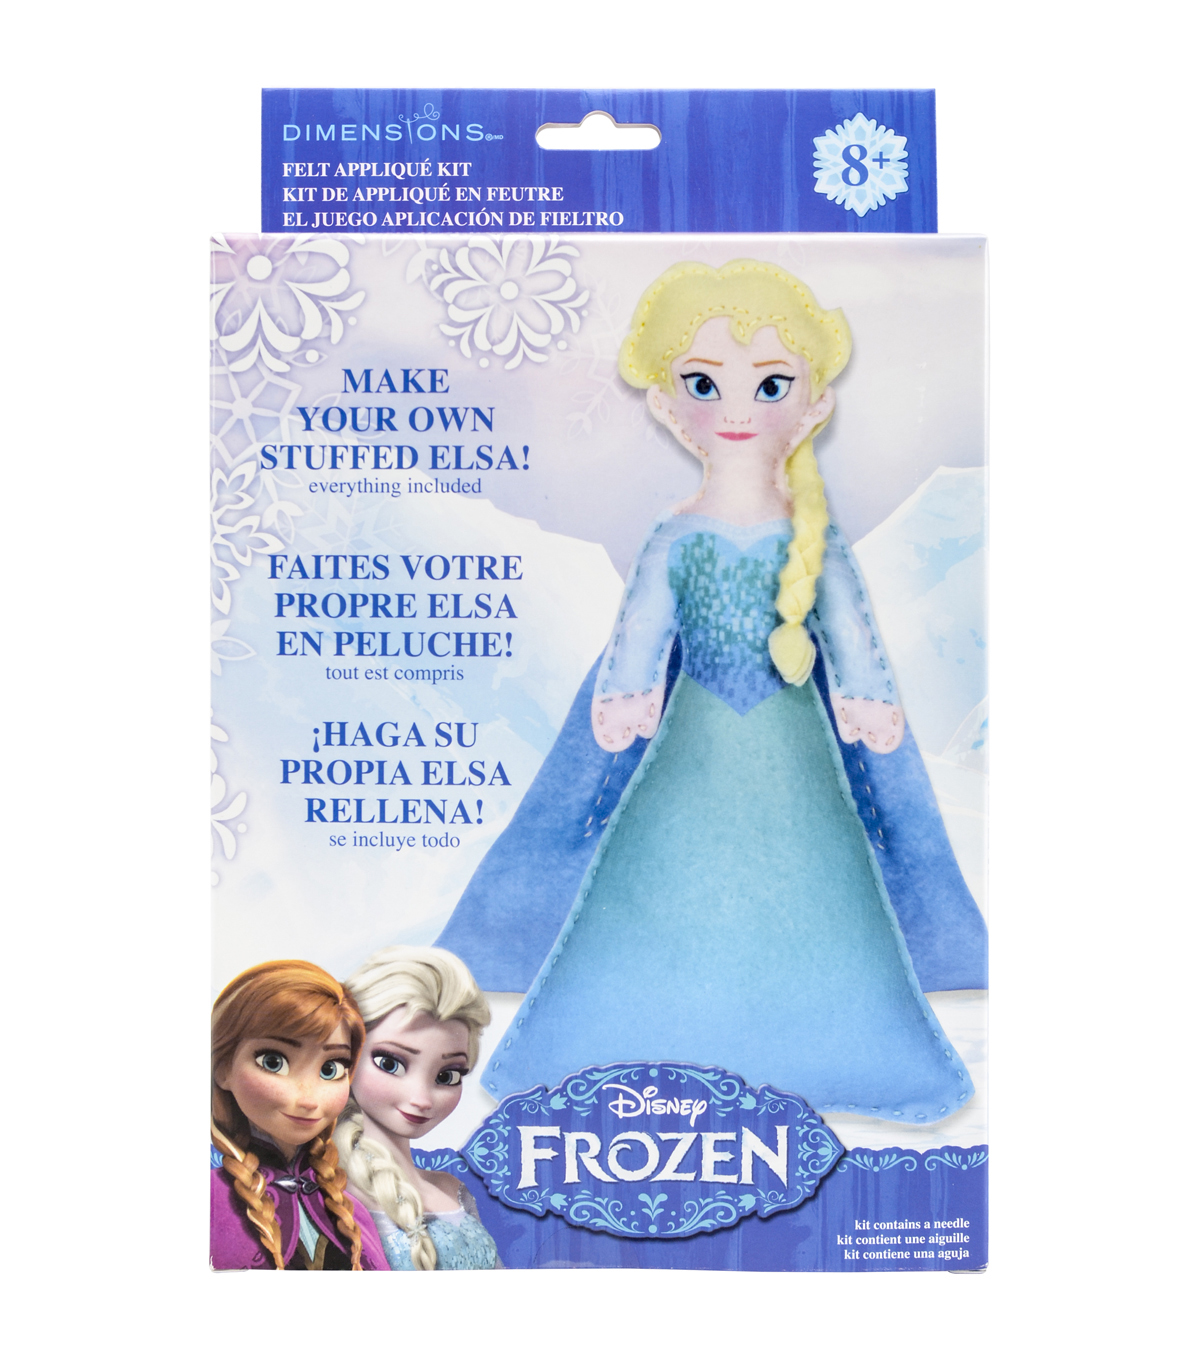 Dimensions Disney Frozen Elsa Felt Applique Kit